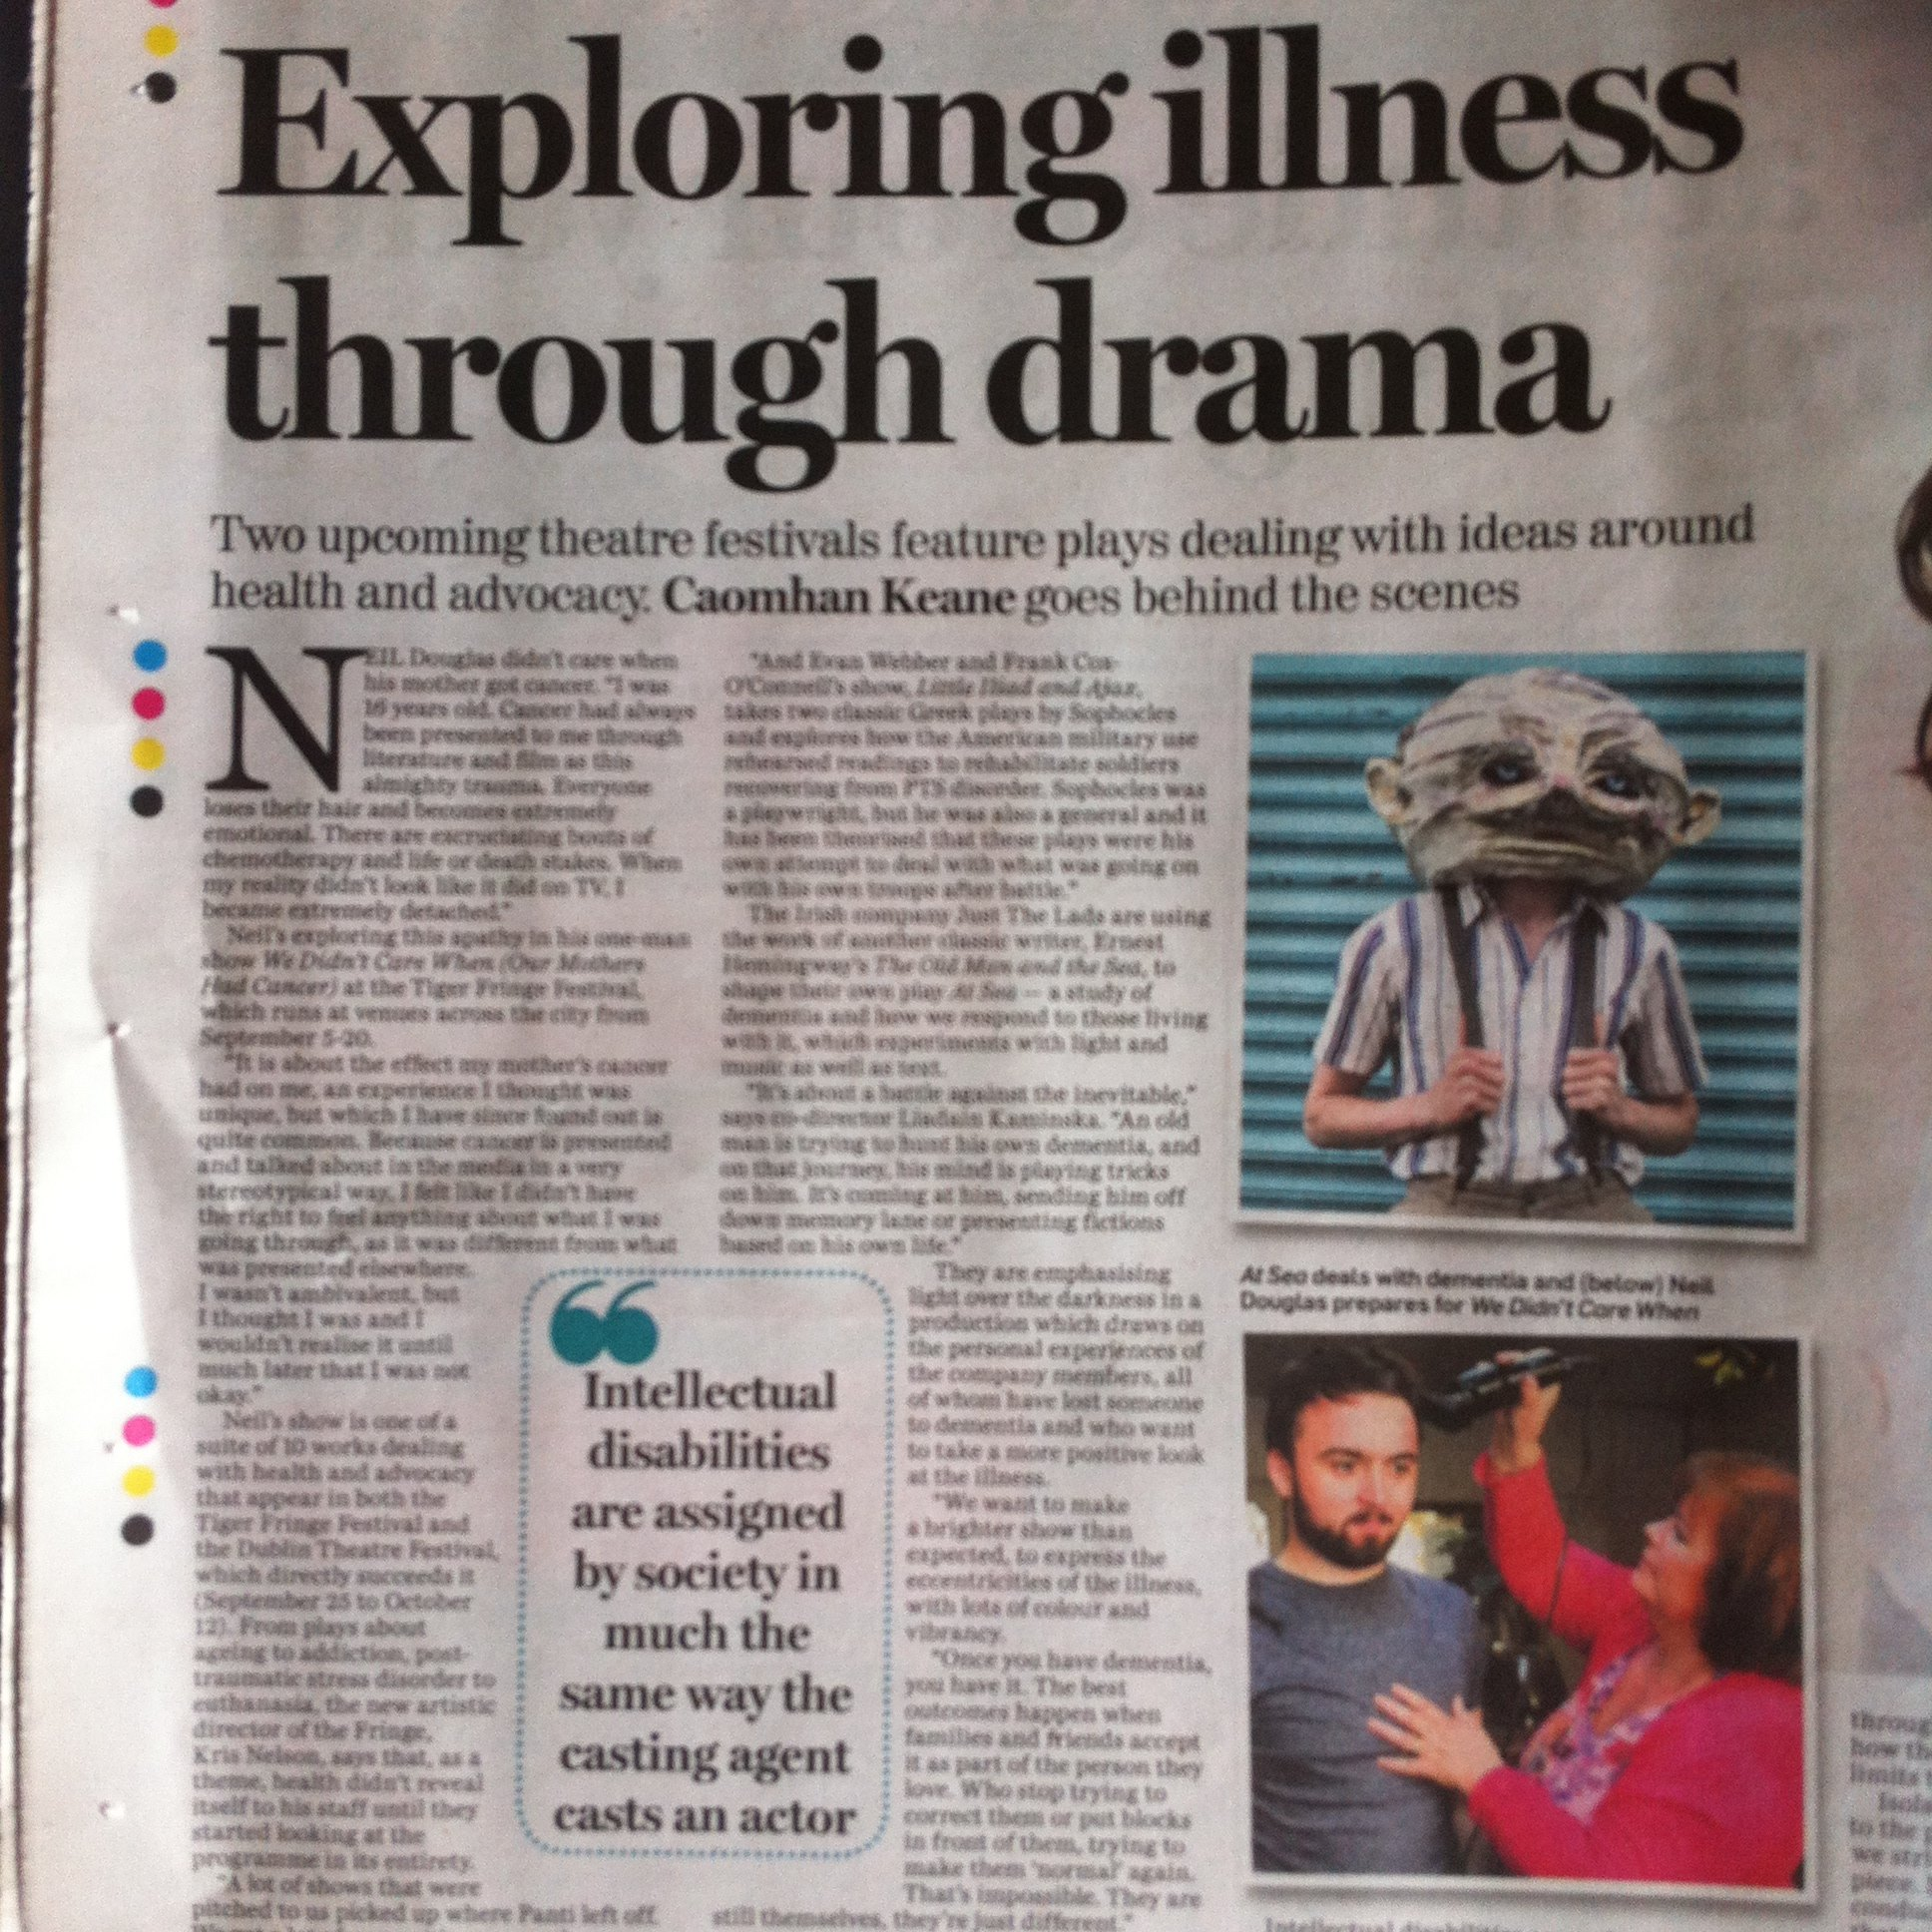 Irish Independent -  Theatre festivals: exploring illness through drama  by Caoimhe Keane    Published 2 September 2014. Available at: http://www.independent.ie/entertainment/theatre-arts/theatre-festivals-exploring-illness-through-drama-30547328.html